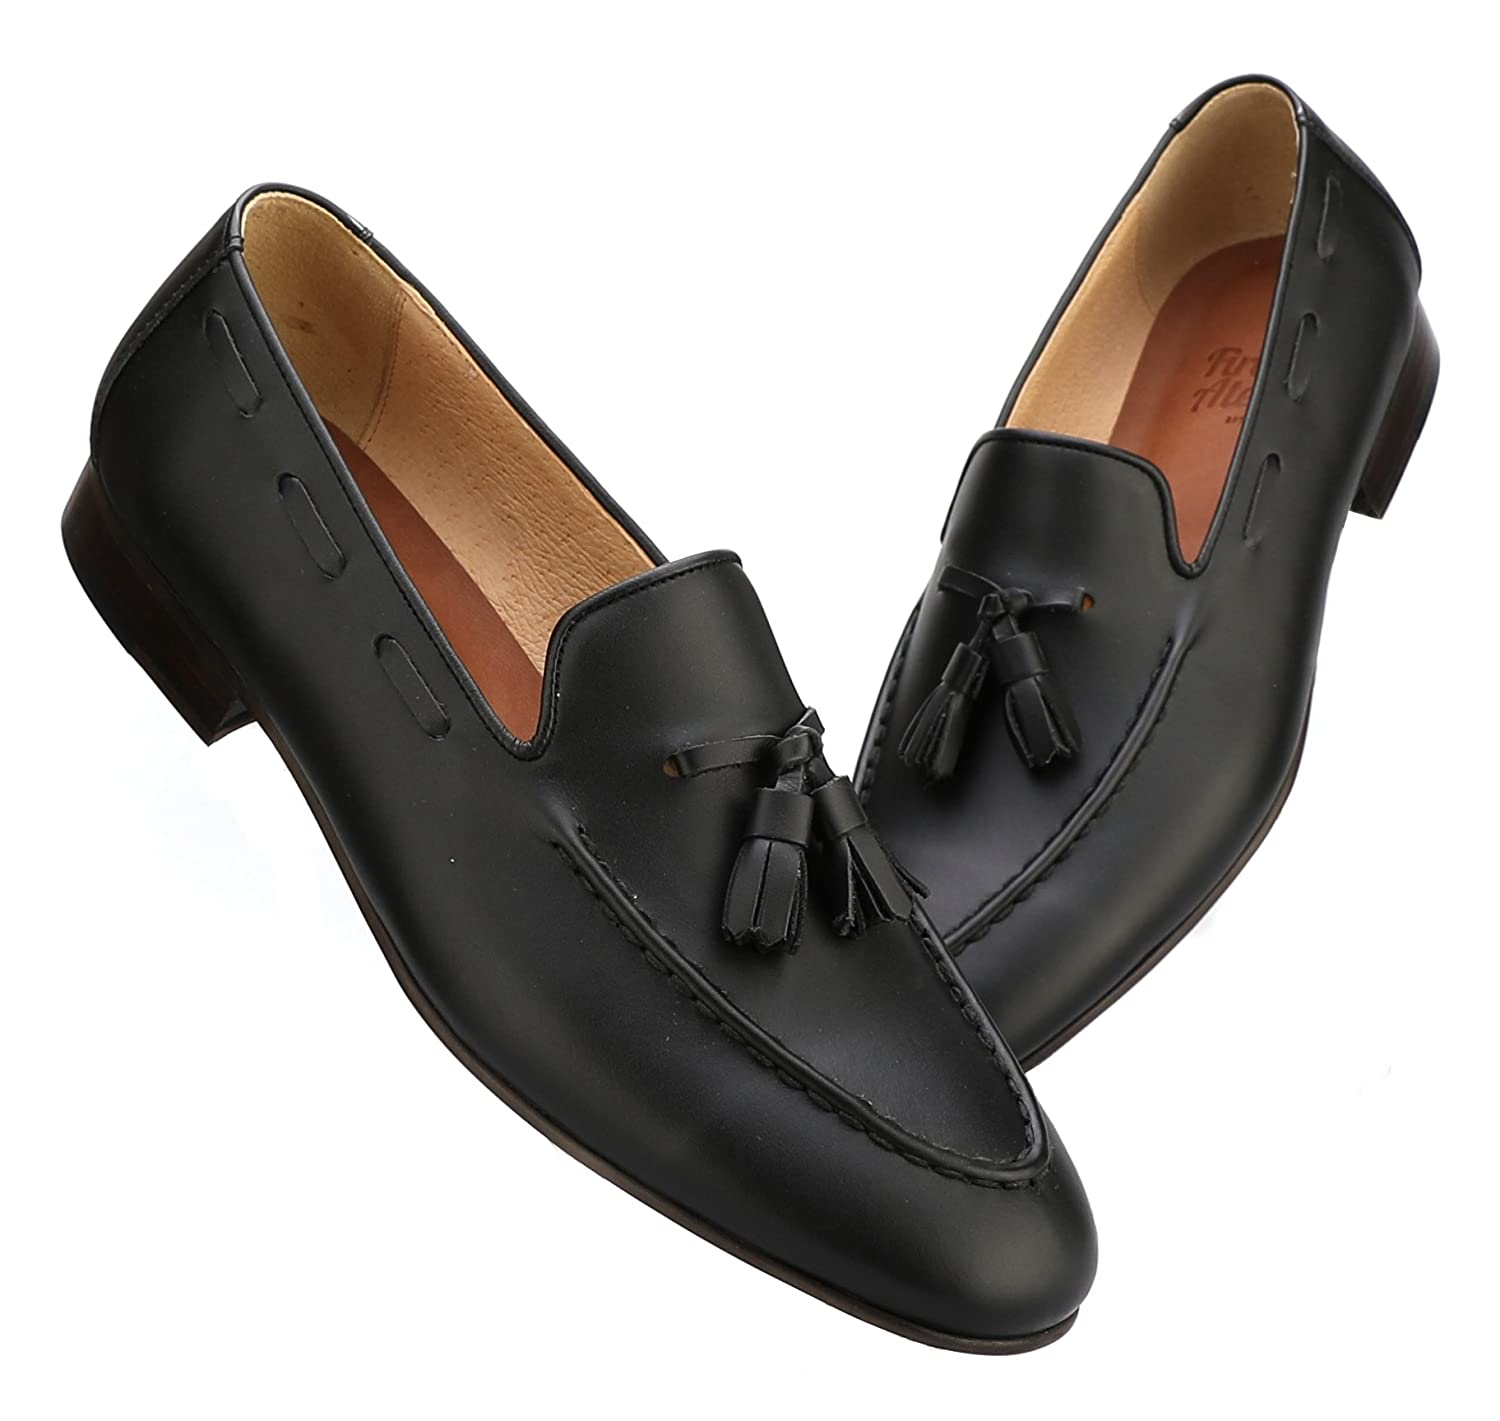 Black Firenze Atelier Men's Handmade Full Grain Leather Tassel Slip-On Loafers Penny Loafers